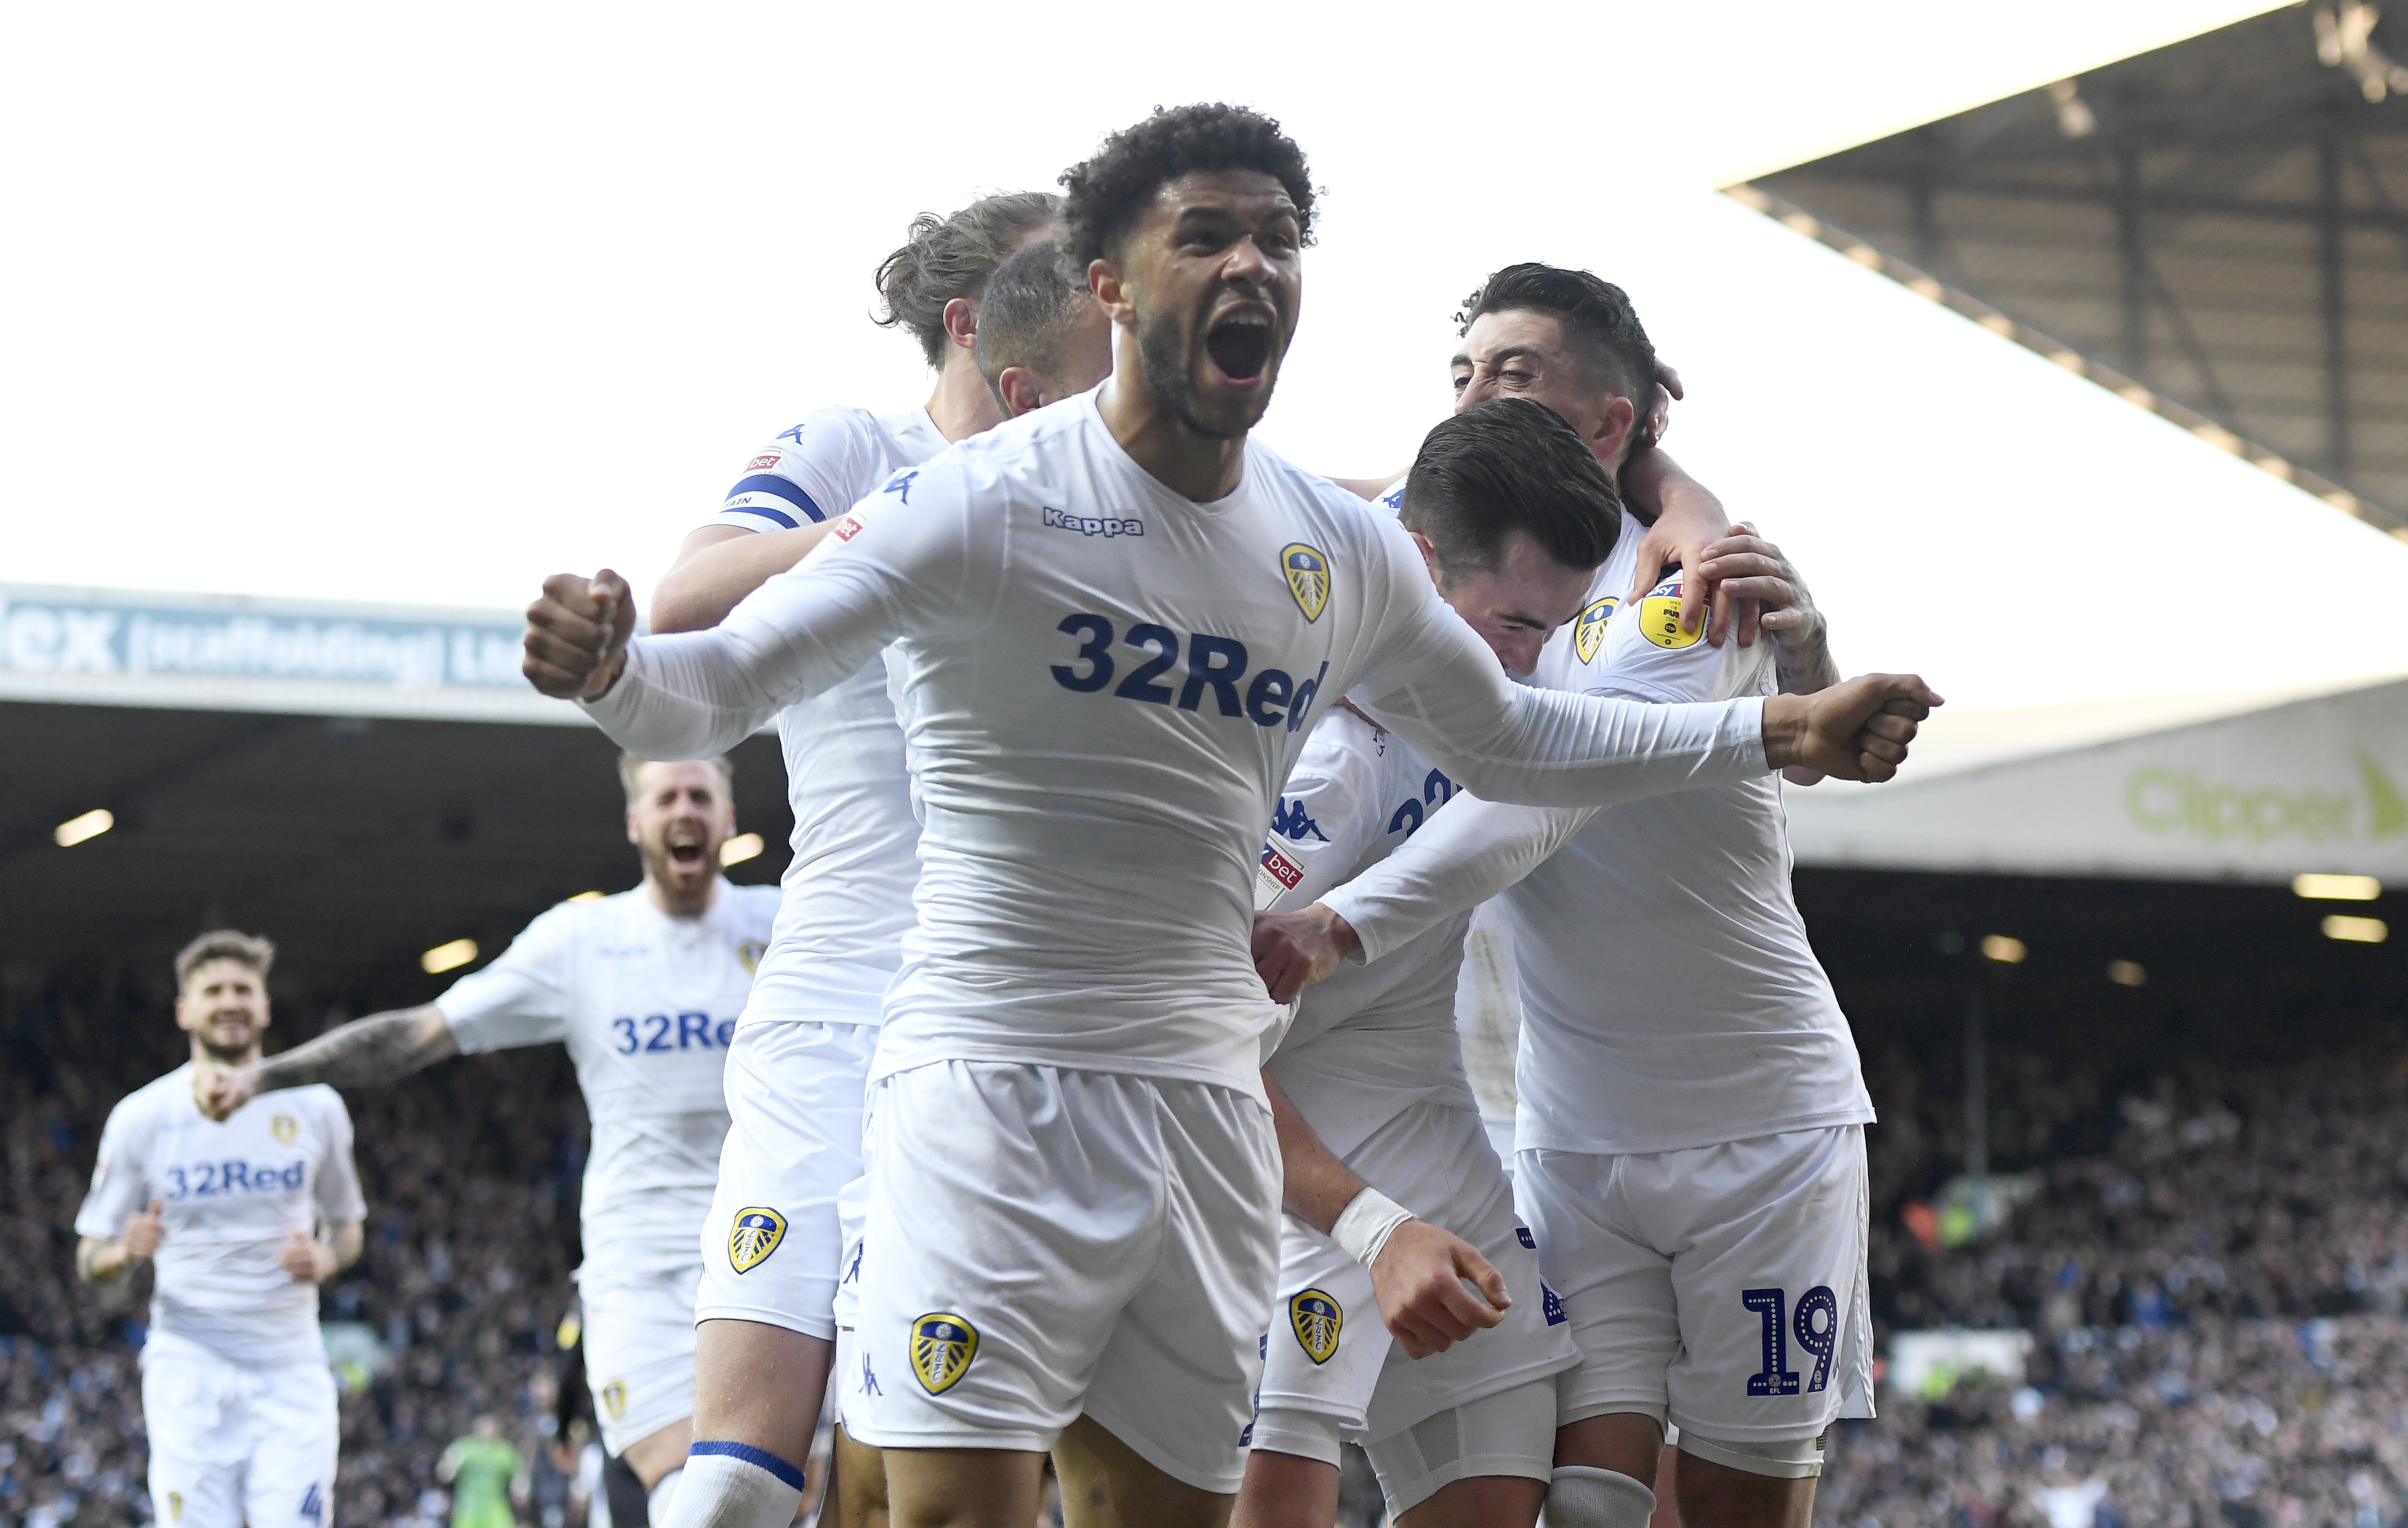 Leeds United v Wigan Athletic: Preview and How to Watch or Stream the Championship Online